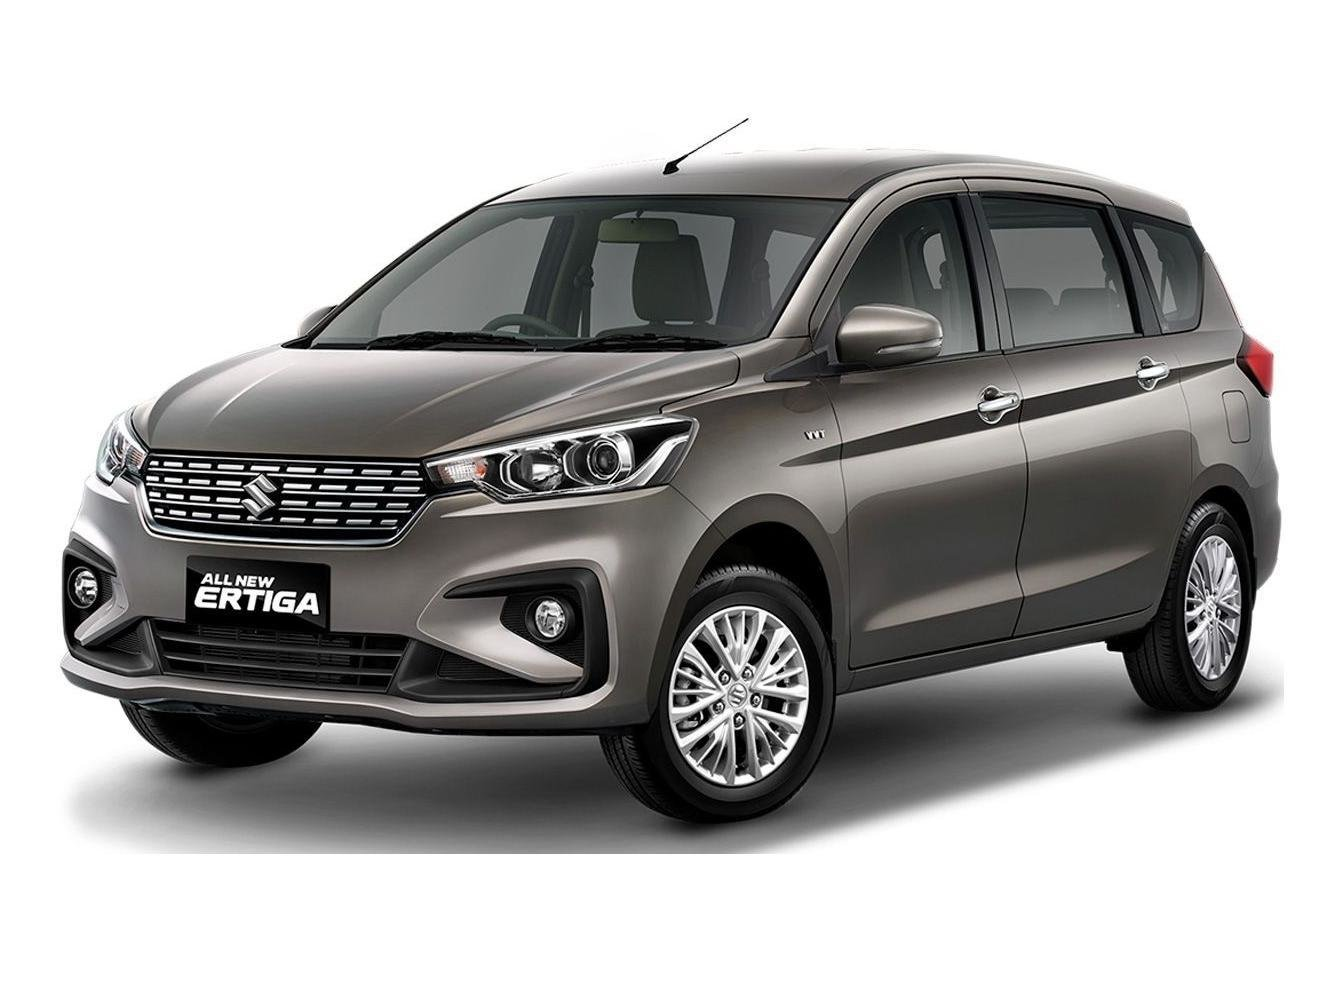 Latest Maruti Suzuki Ertiga Price In India Images Specs Free Download